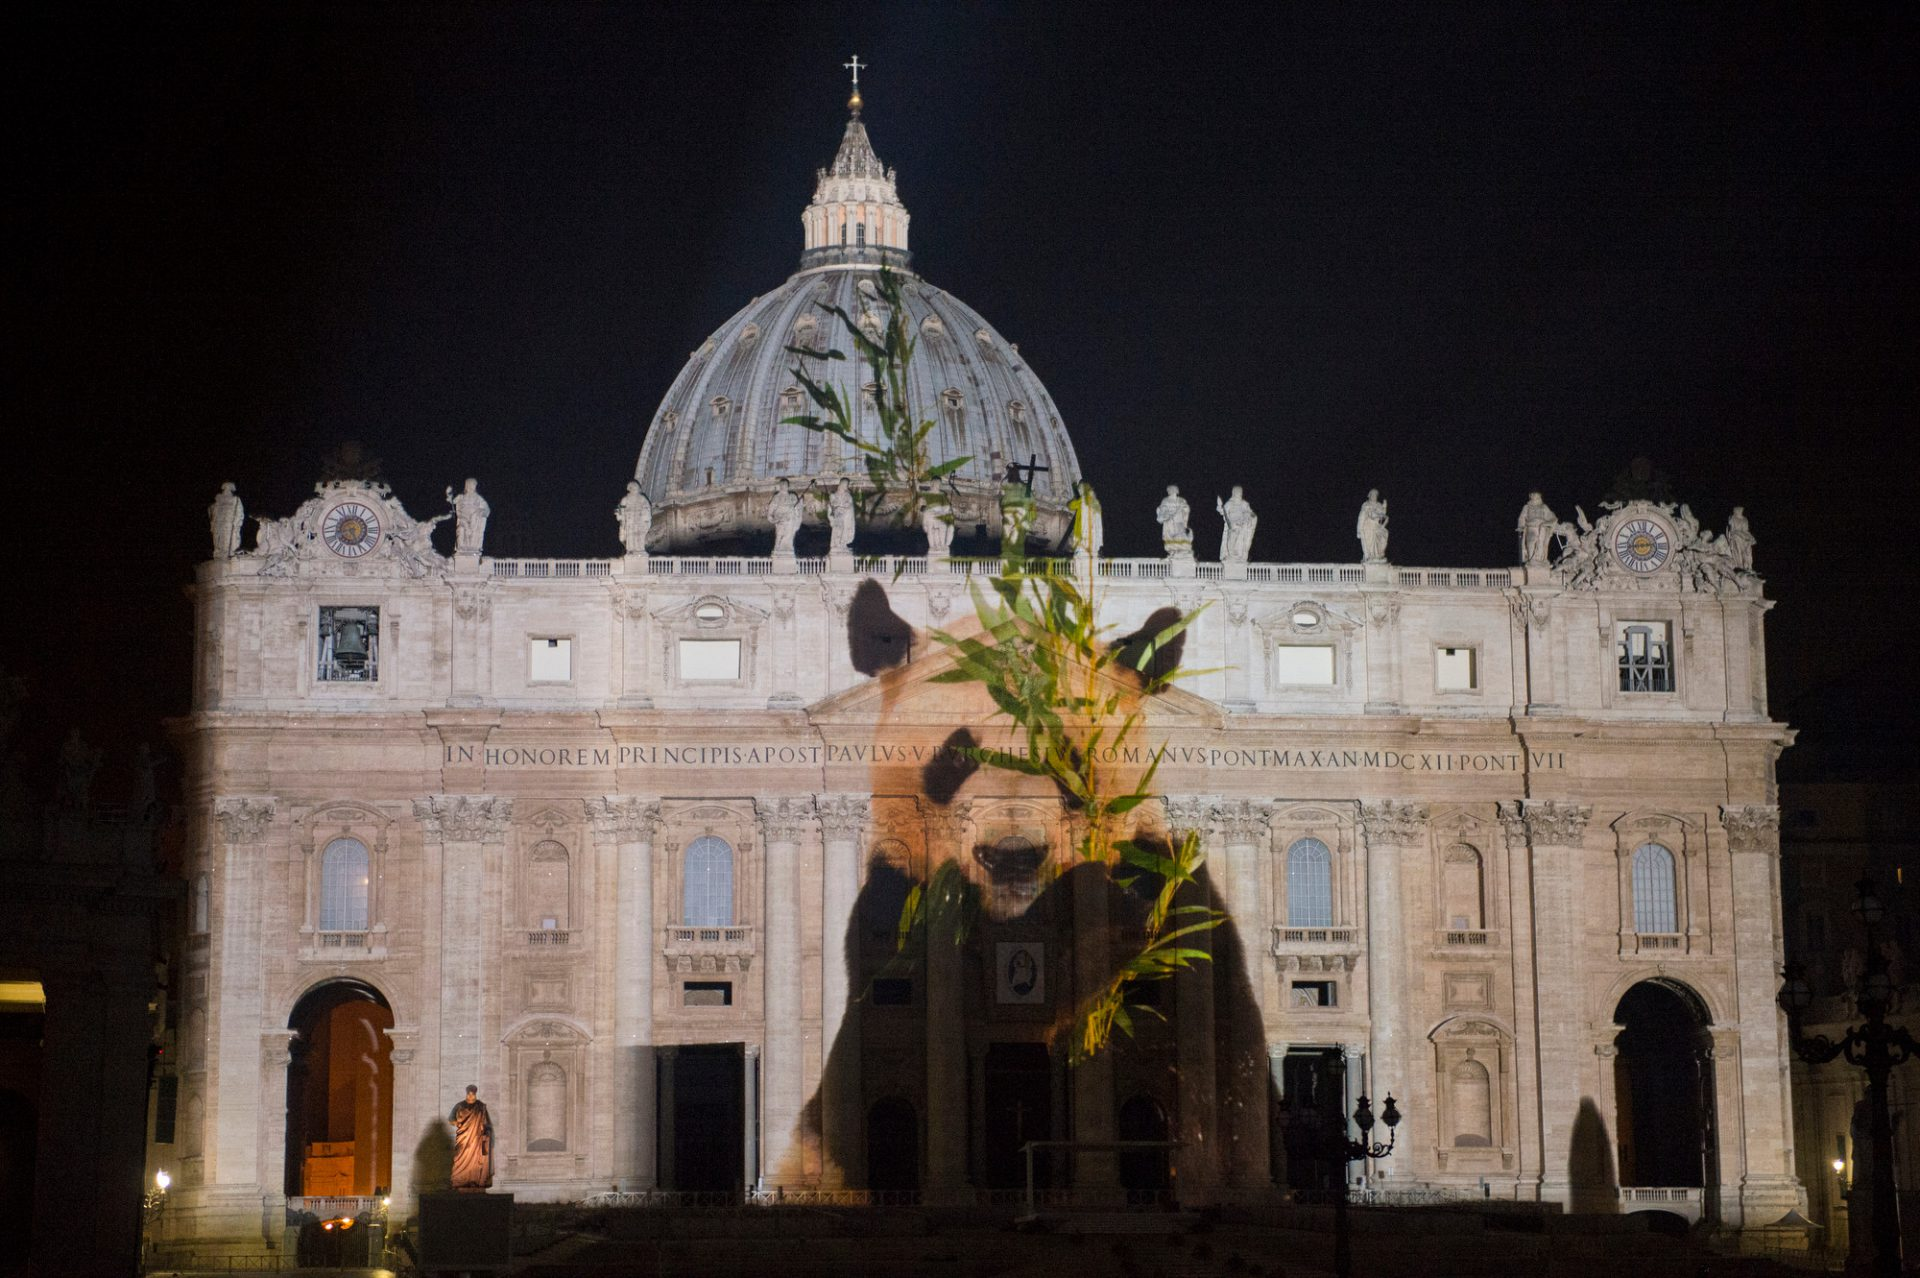 Photo: A giant panda is projected onto the Vatican in an effort to raise awareness for the extinction crisis.